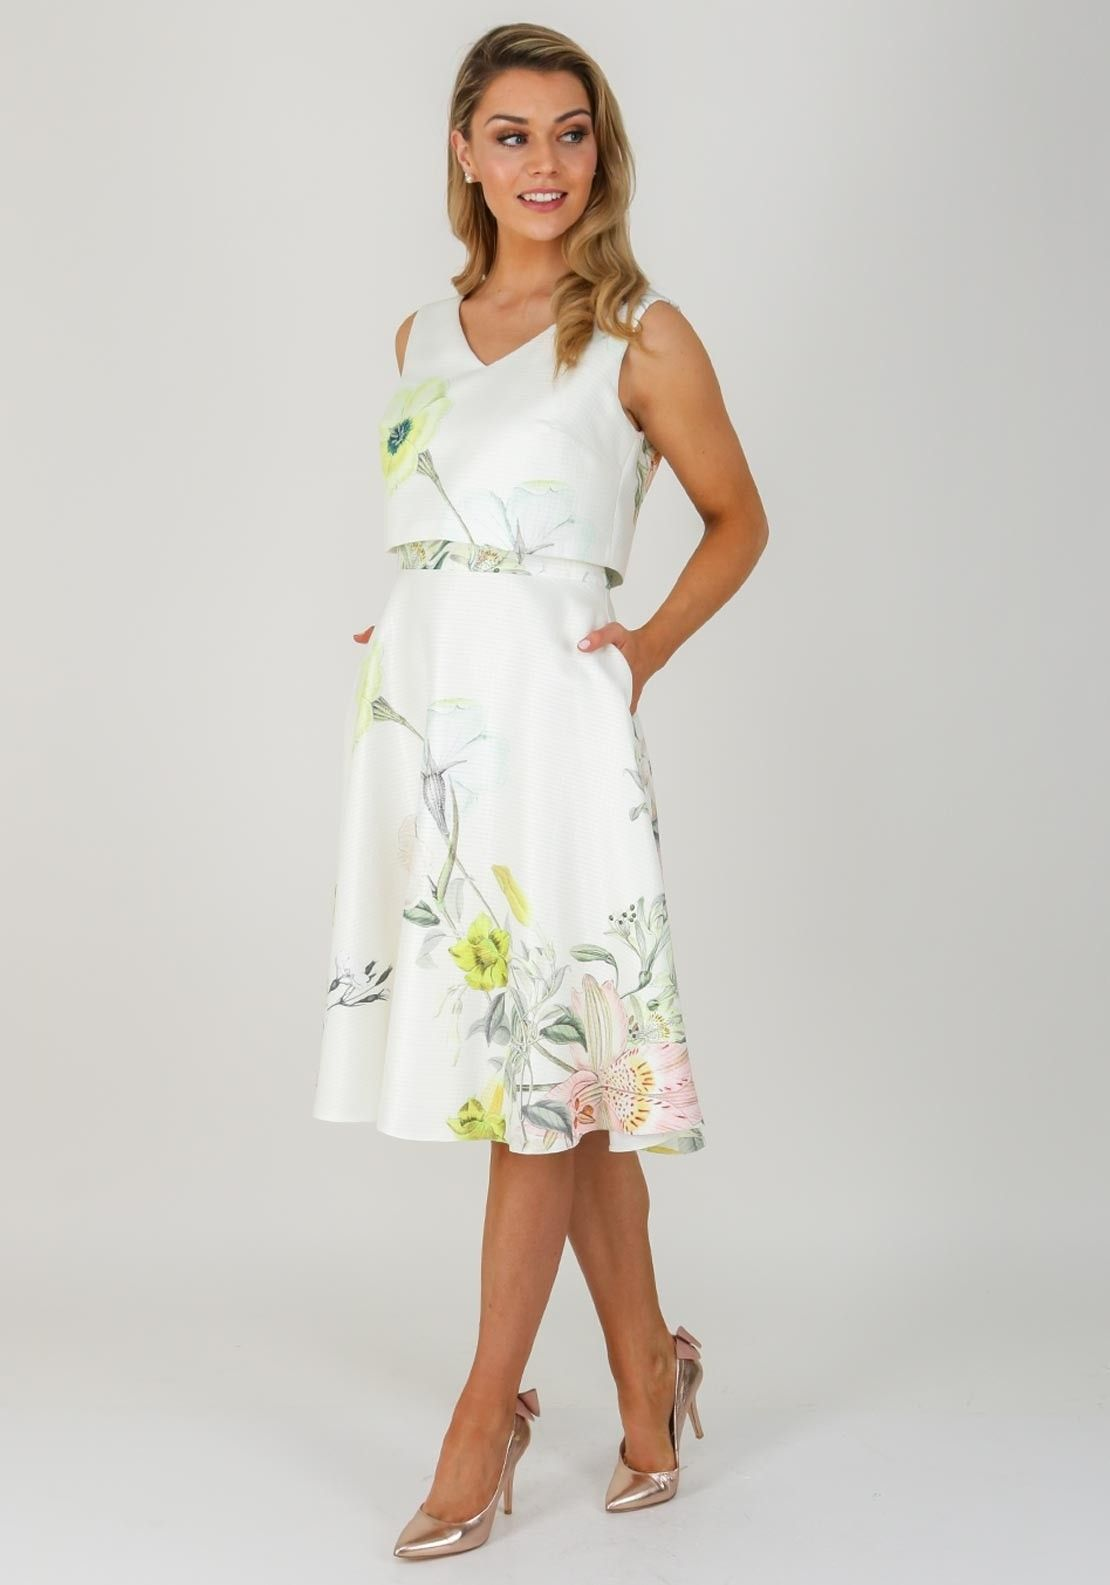 6fbf756696c5 Ella Boo Floral Overlay Flared Dress, Cream | Ella Boo SS18 ...